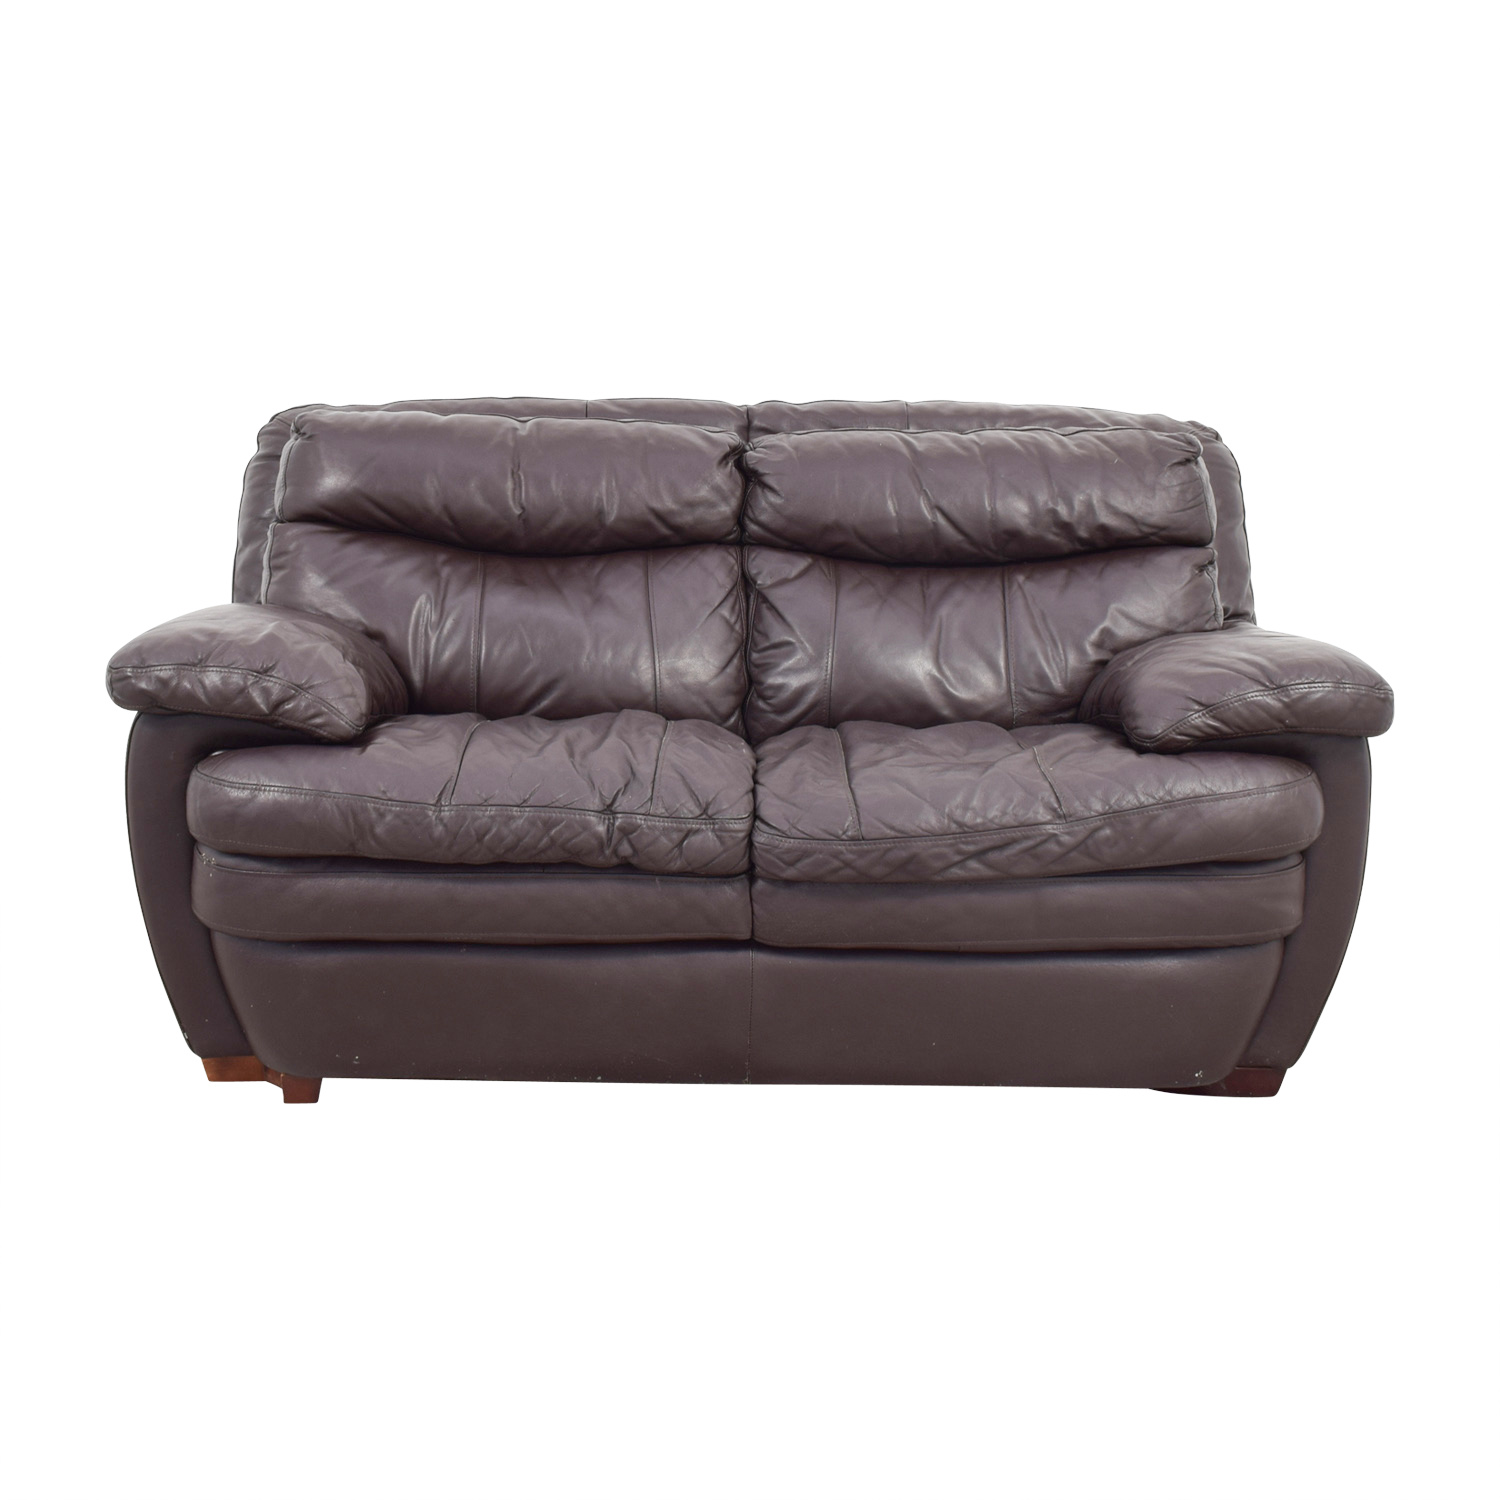 buy Bobs Furniture Brown Leather Loveseat Bobs Furniture Loveseats